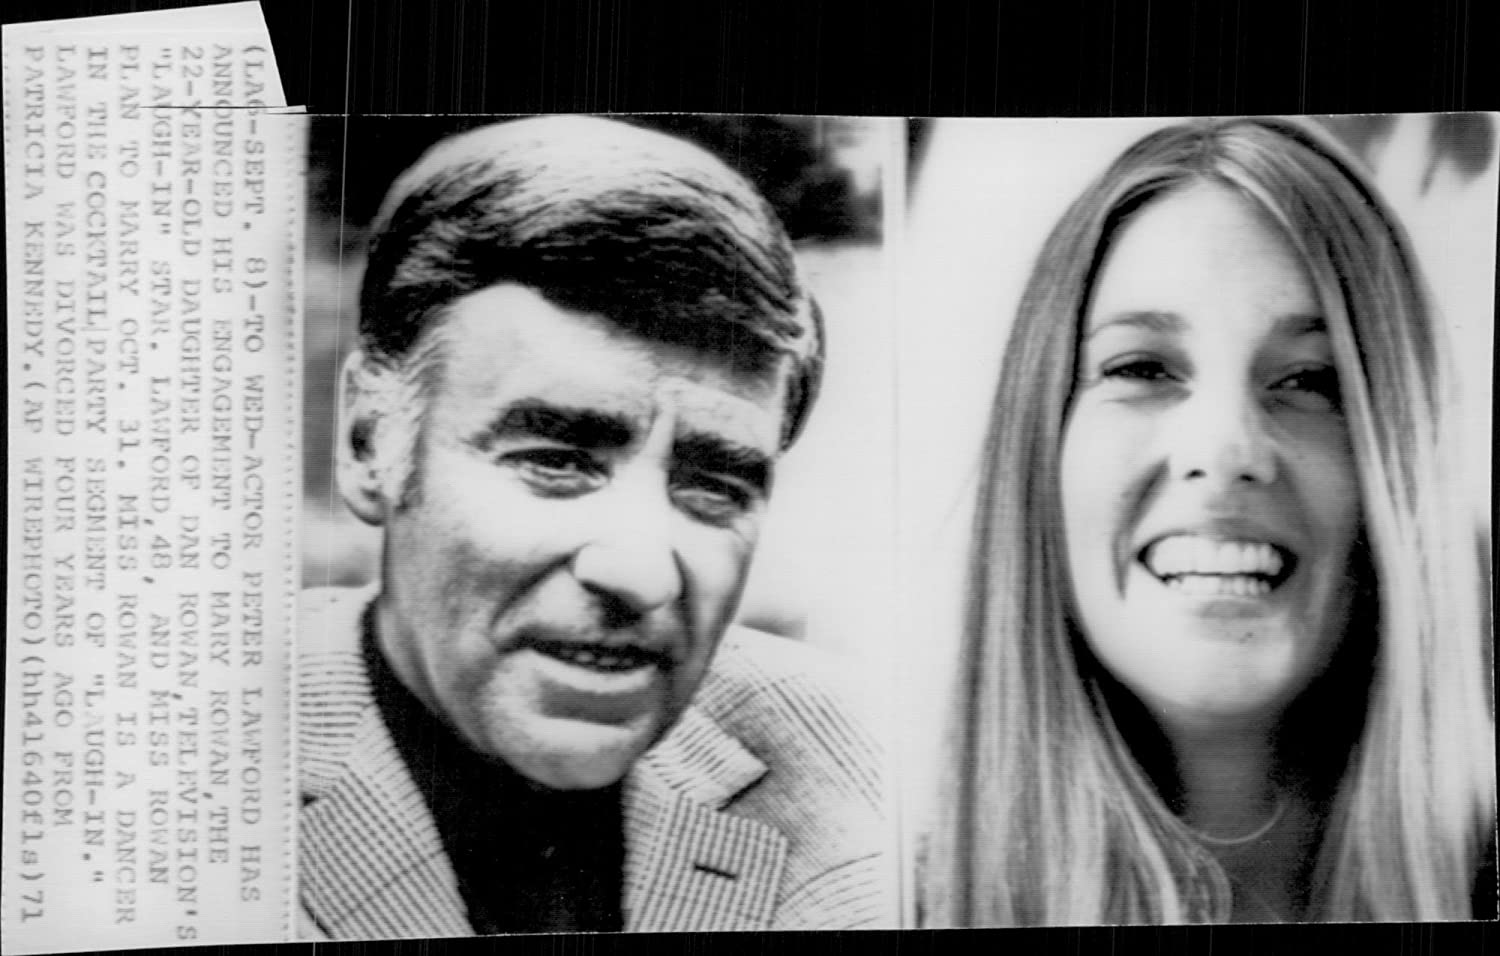 Vintage photo of Photography on actor Peter Lawford along with his fiancee Mary Rowan.: Amazon.co.uk: Kitchen & Home